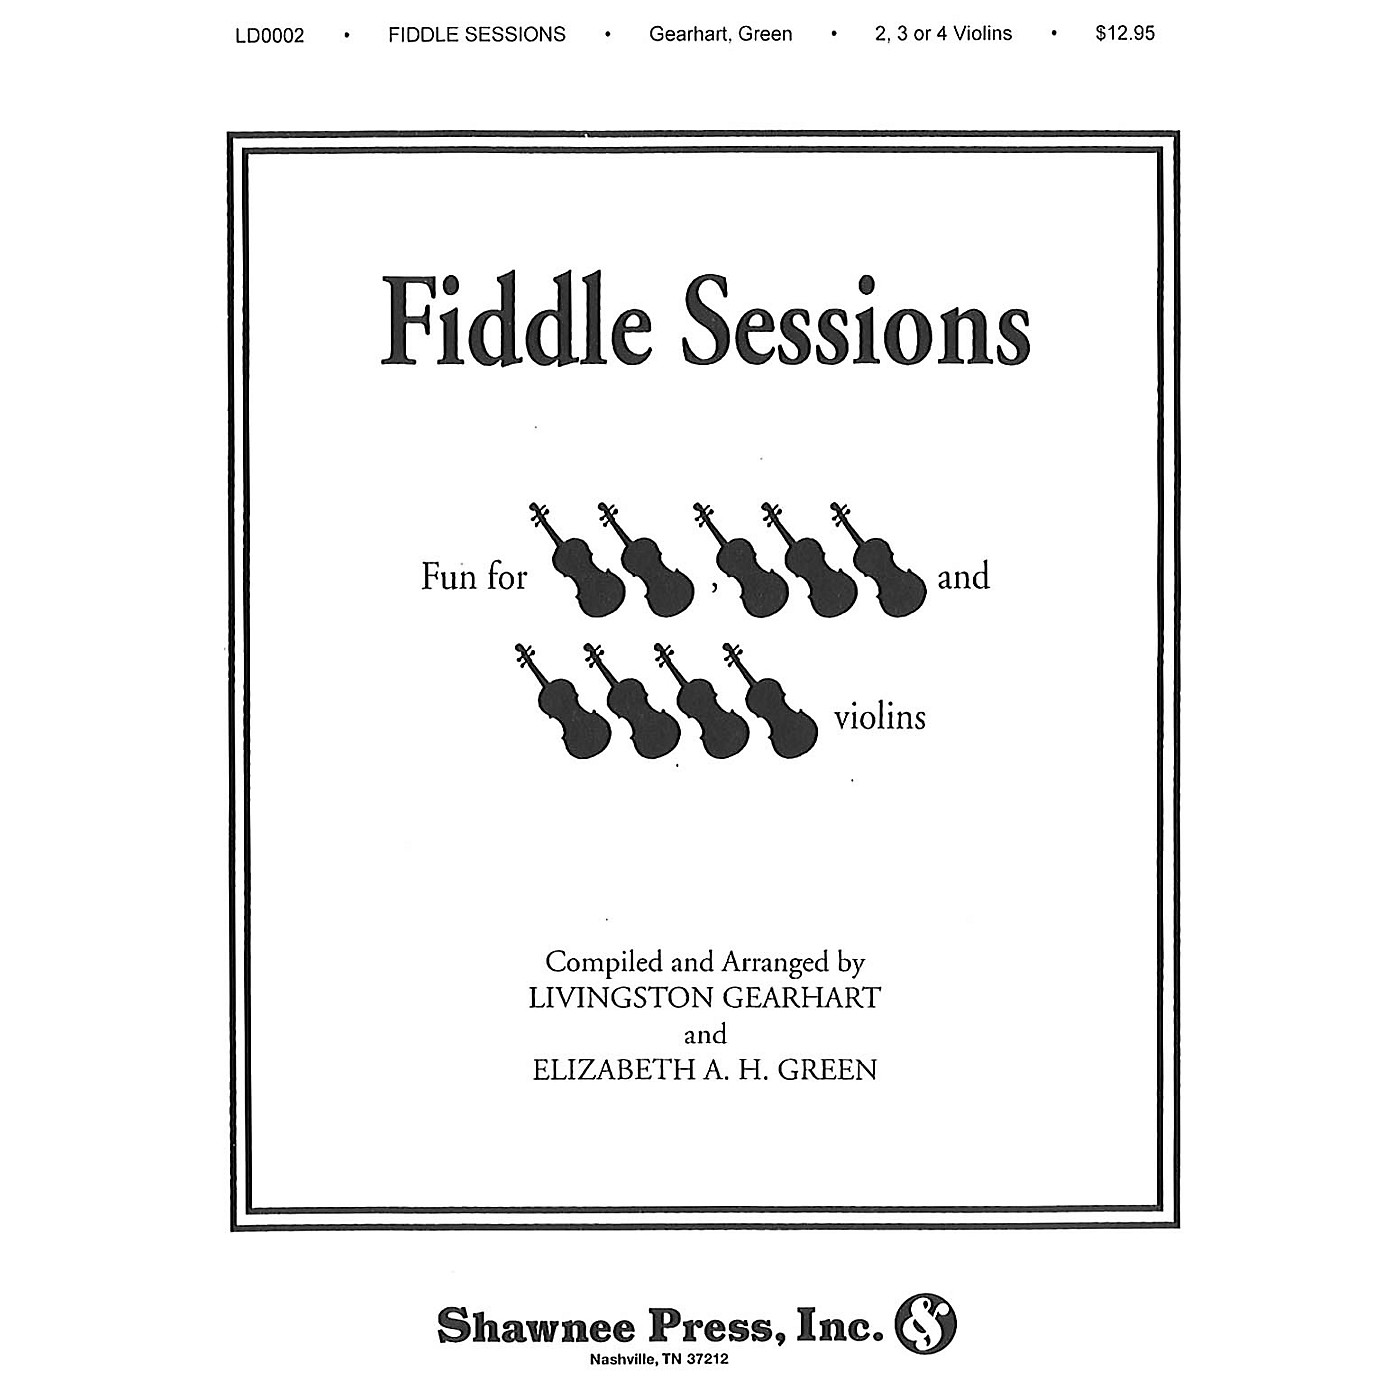 Hal Leonard Fiddle Sessions 2-4 Violins Violin thumbnail